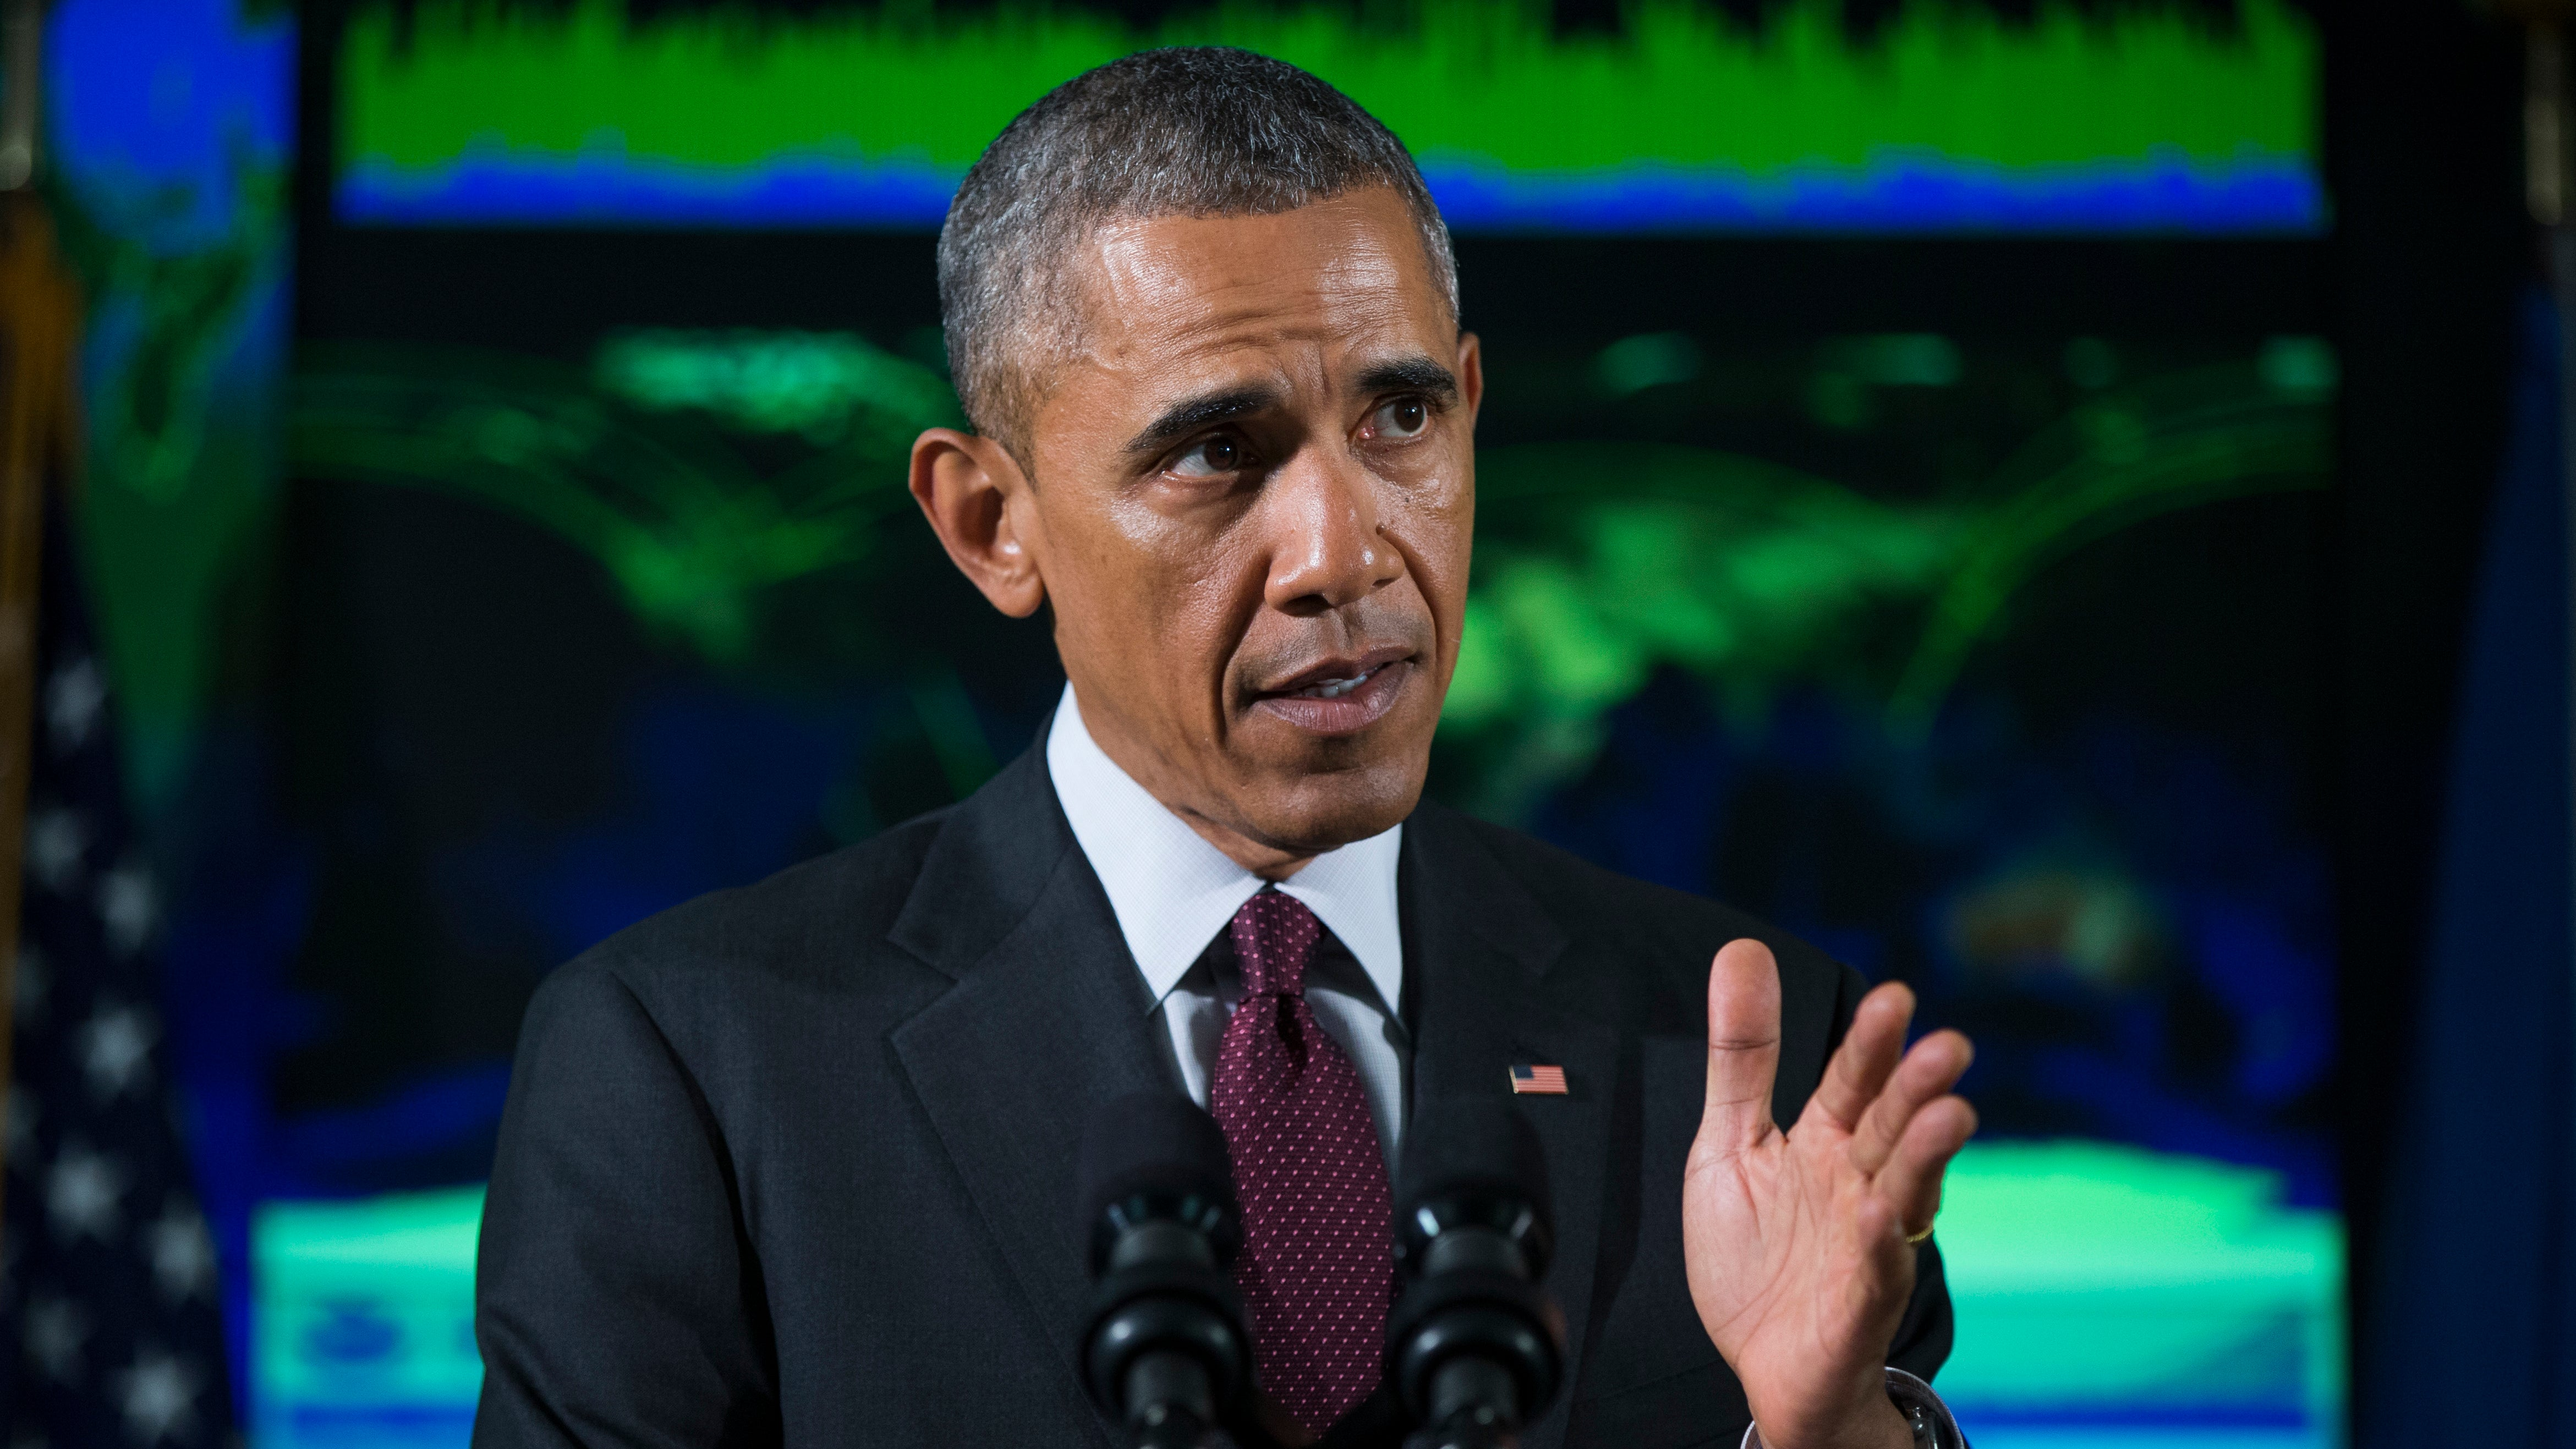 Obama's War on Hackers Is Turning Everyone into a Suspect